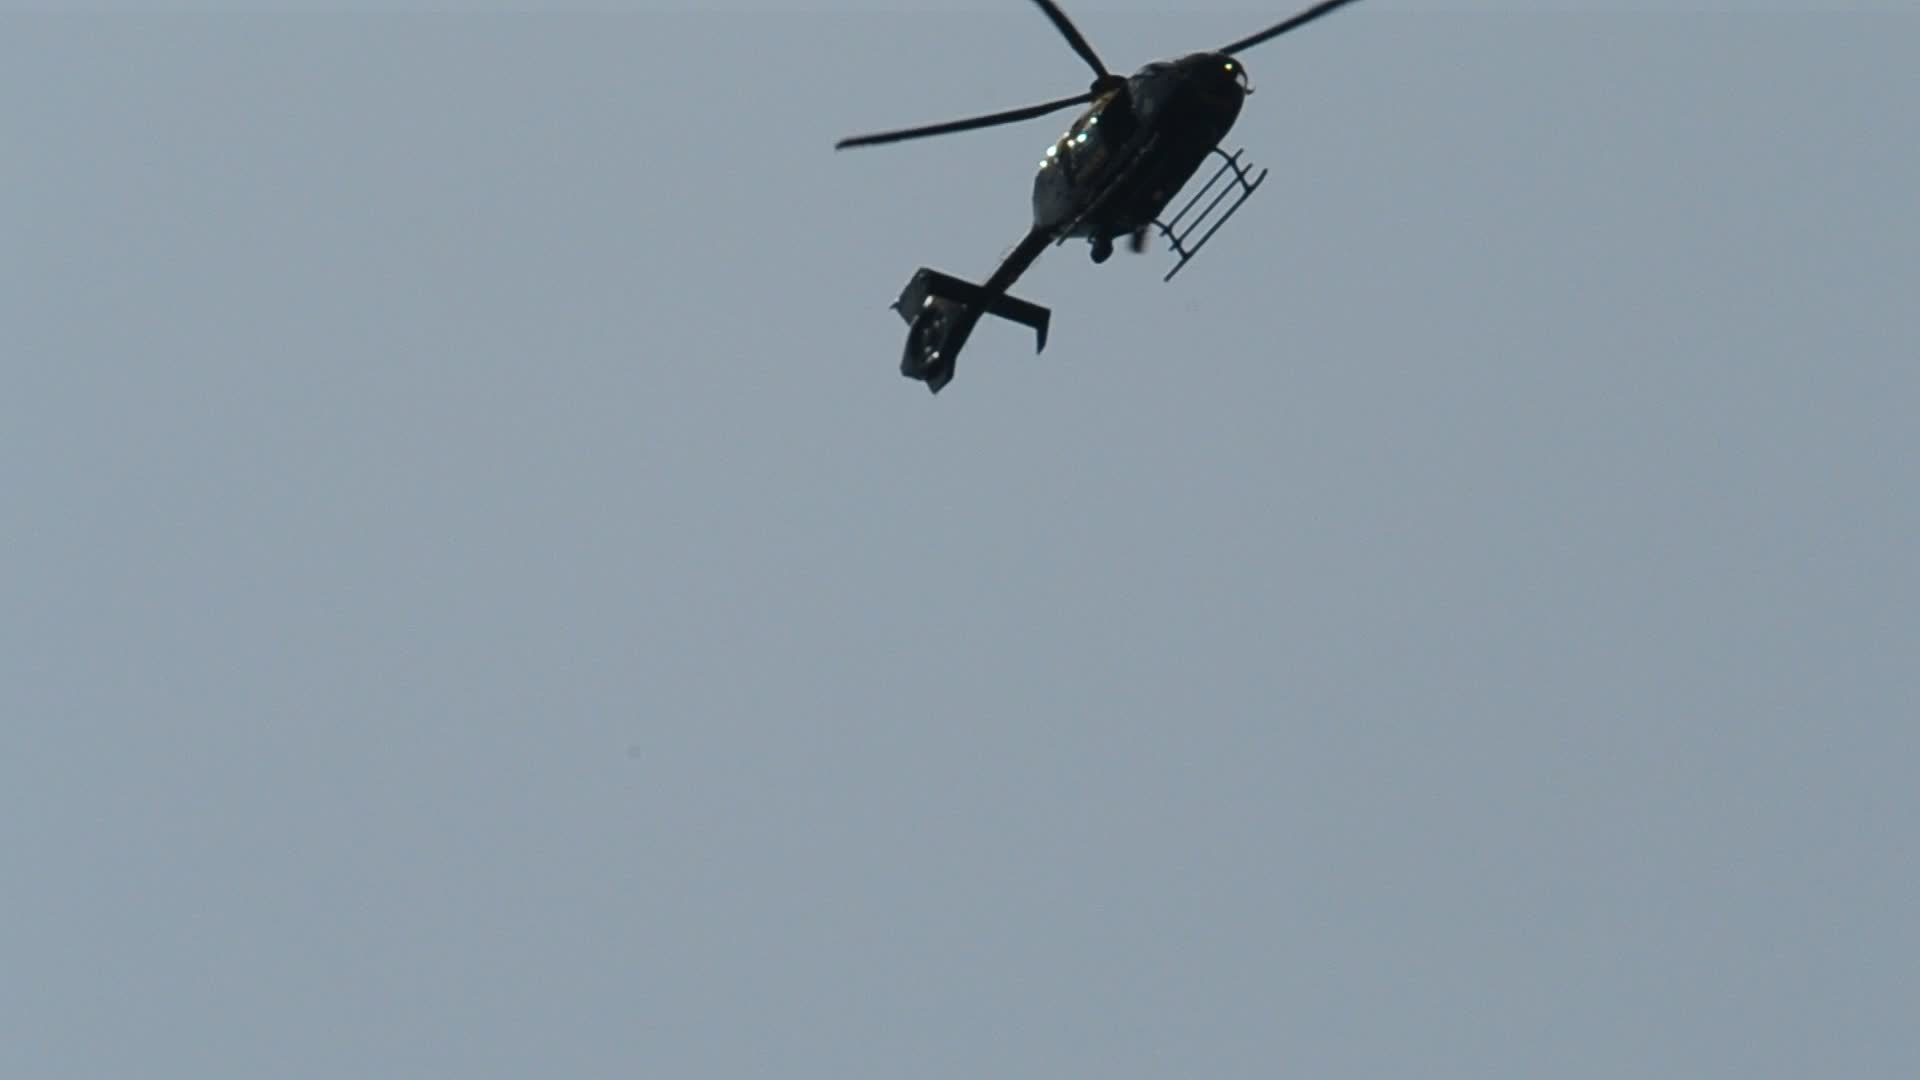 UPLOAD UNSAFE FLY G-NEAU . 9/6/21 CHILDRENS AIR AMBULANCE (G-TCAA) NEARLY CRASHED INTO MY HOME REPORT 7919